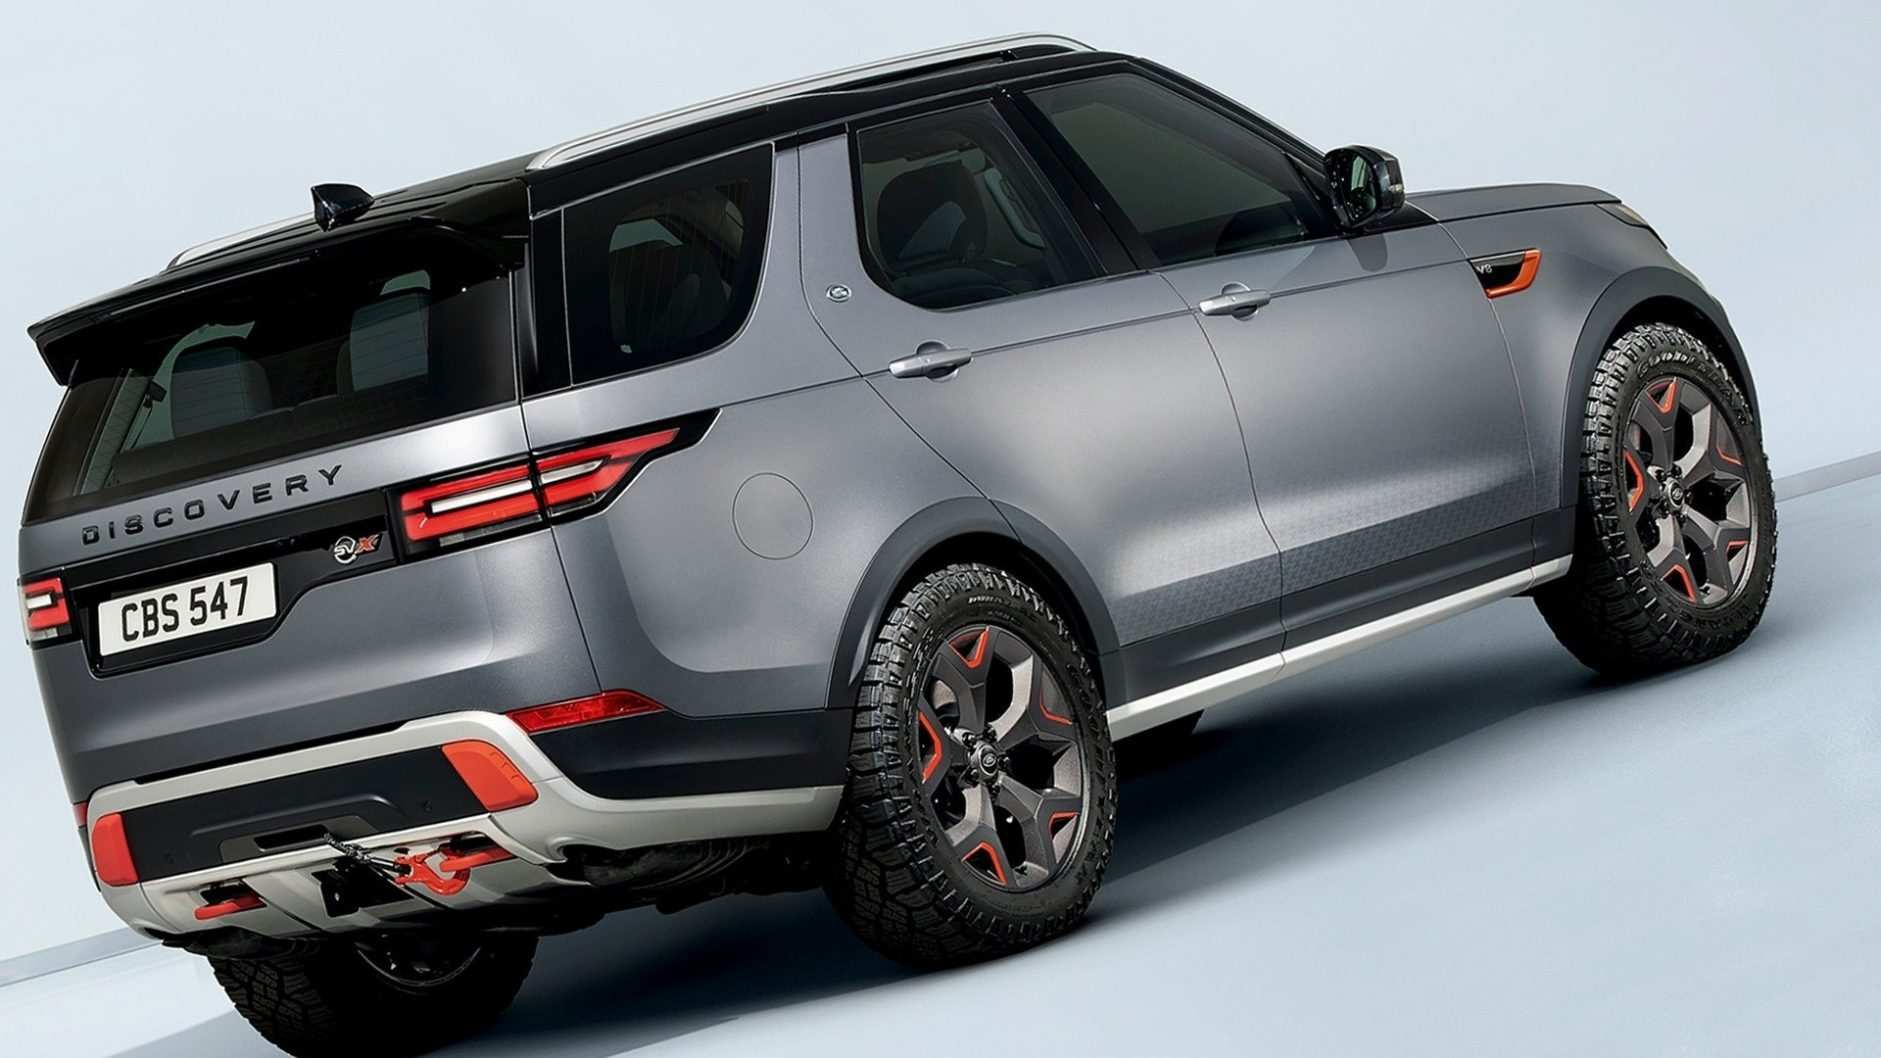 28 All New 2019 Land Rover Discovery Svx Overview for 2019 Land Rover Discovery Svx